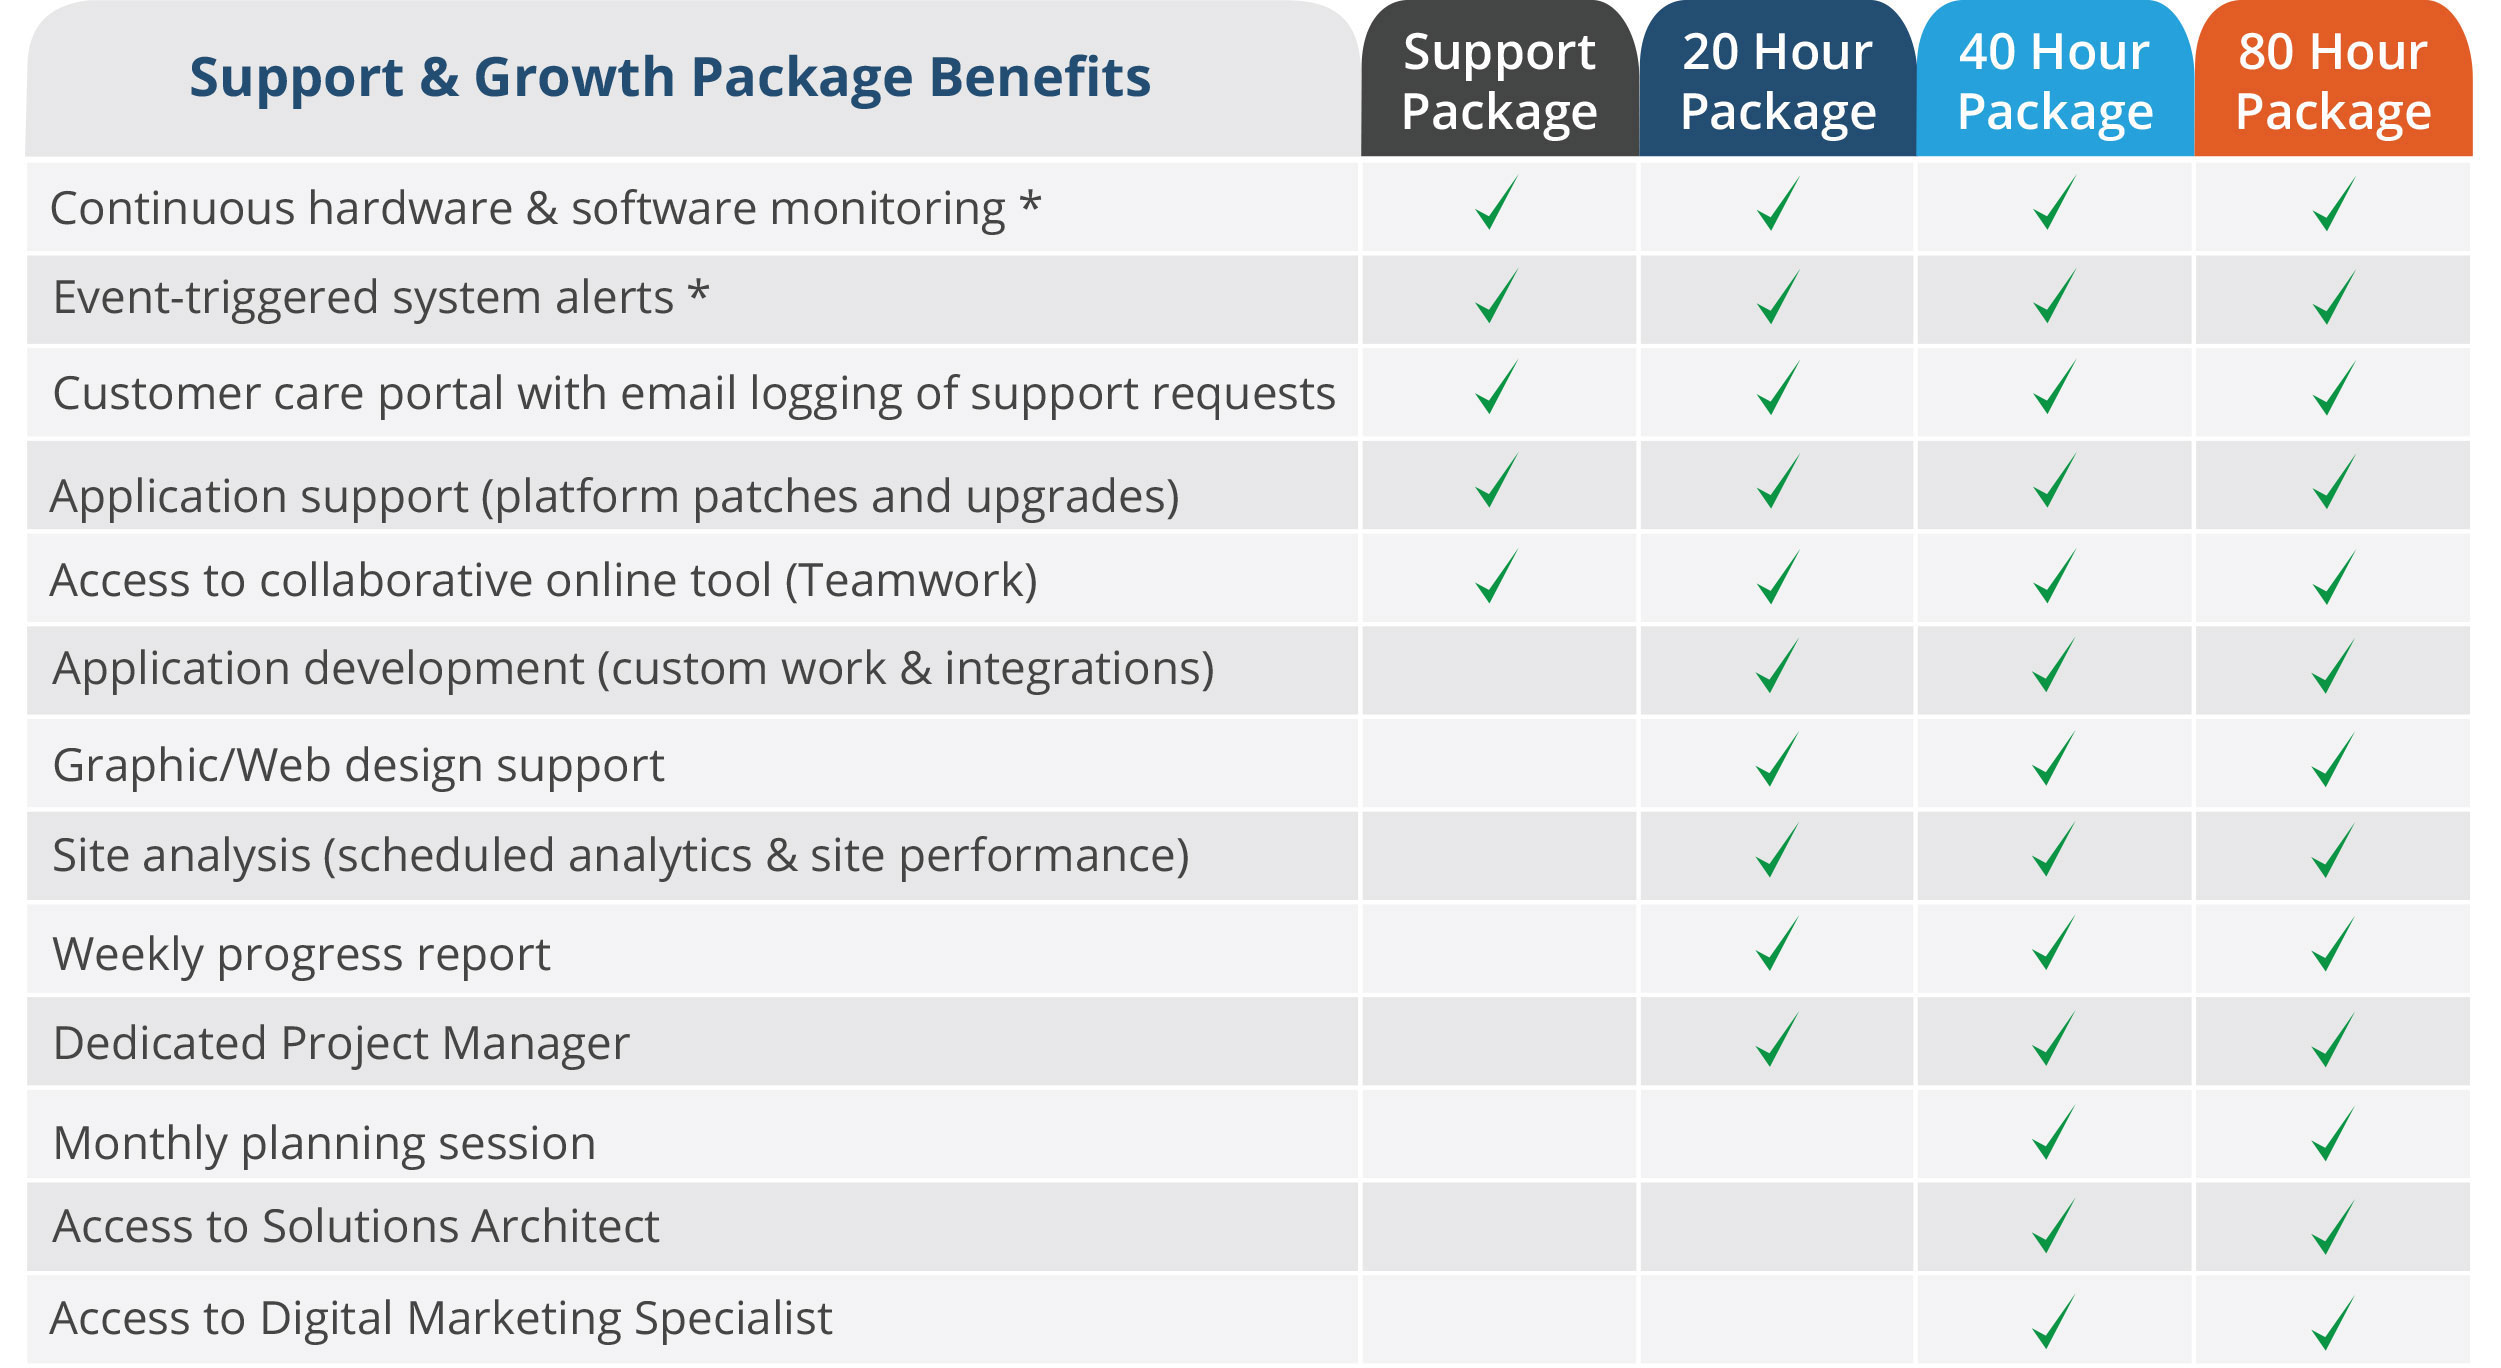 Support & Growth Packages